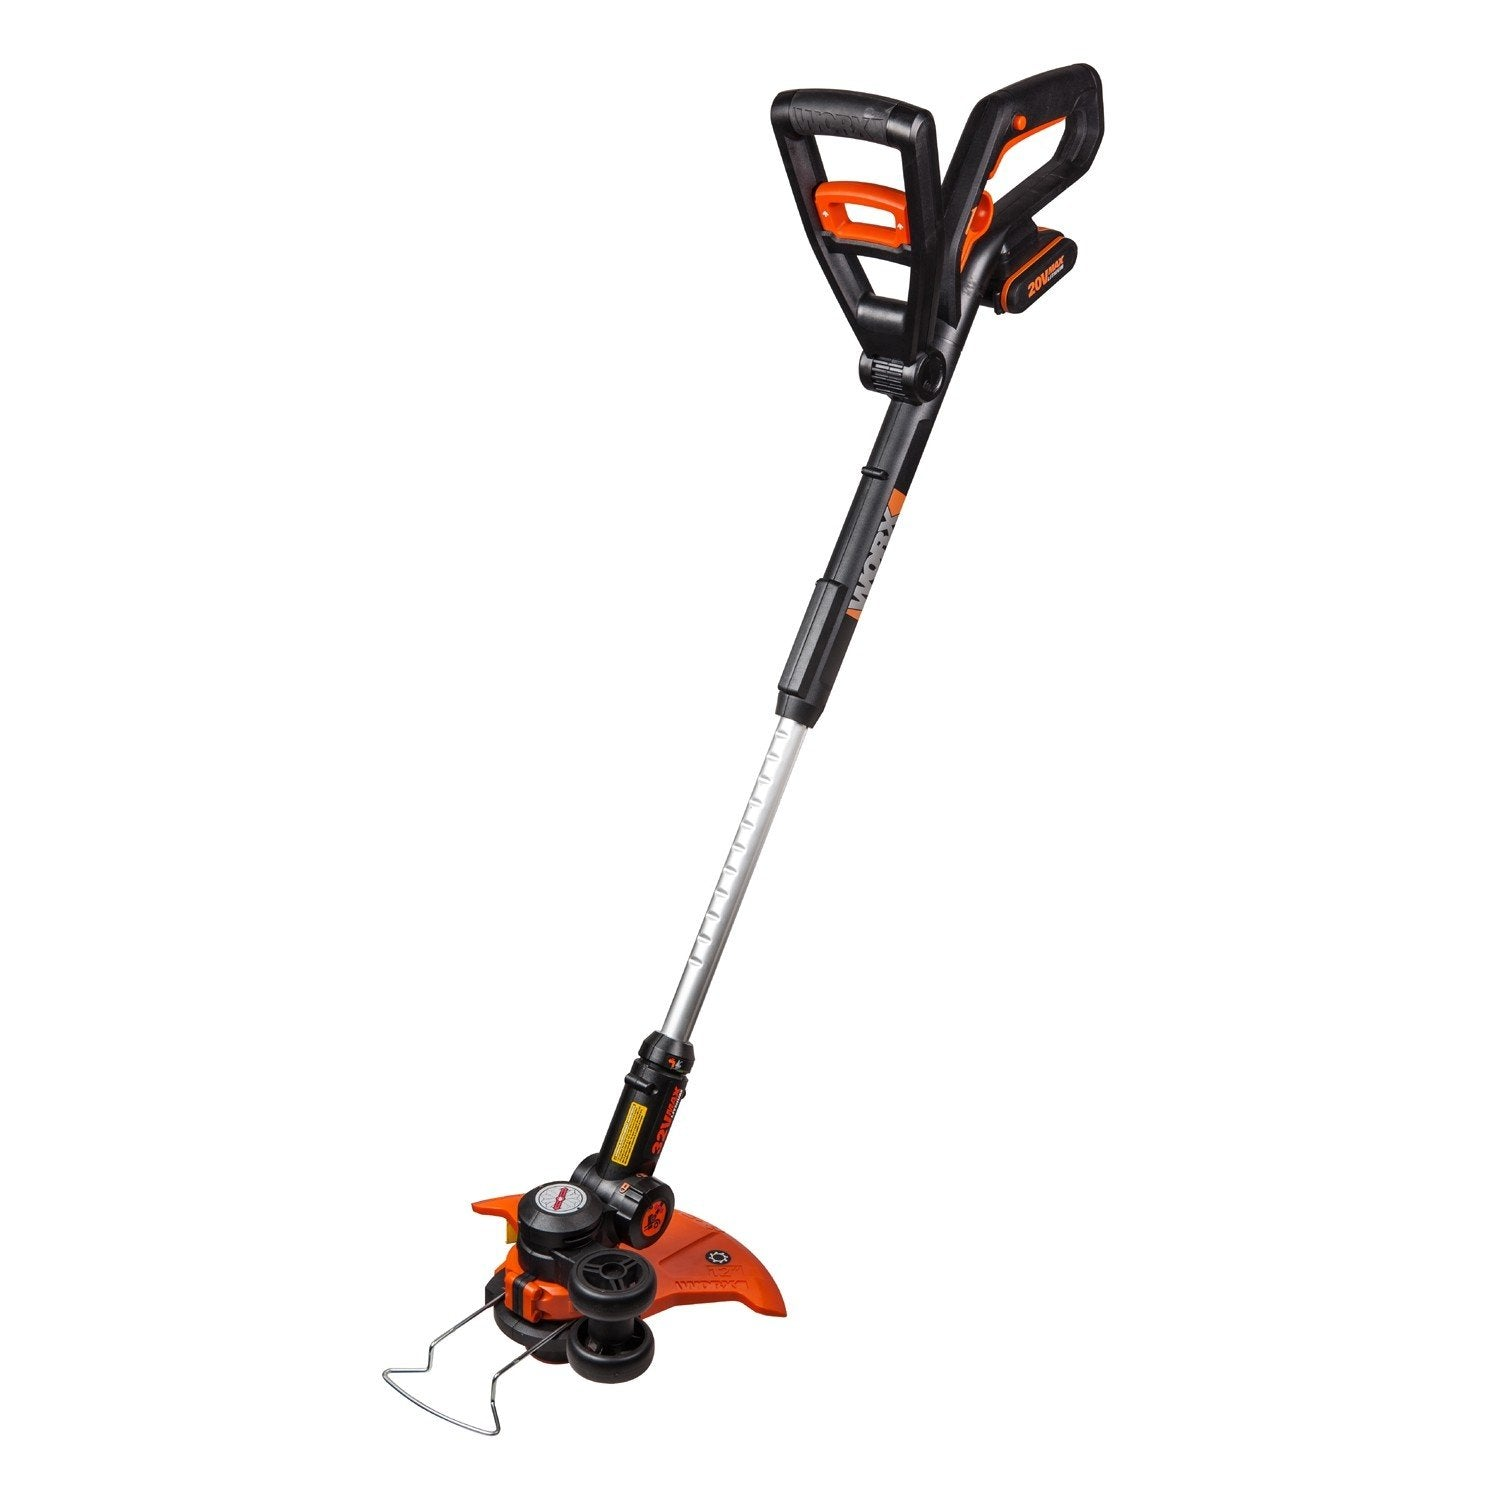 RENT - Worx Grass Trimmer 30cm 20V Li-Ion